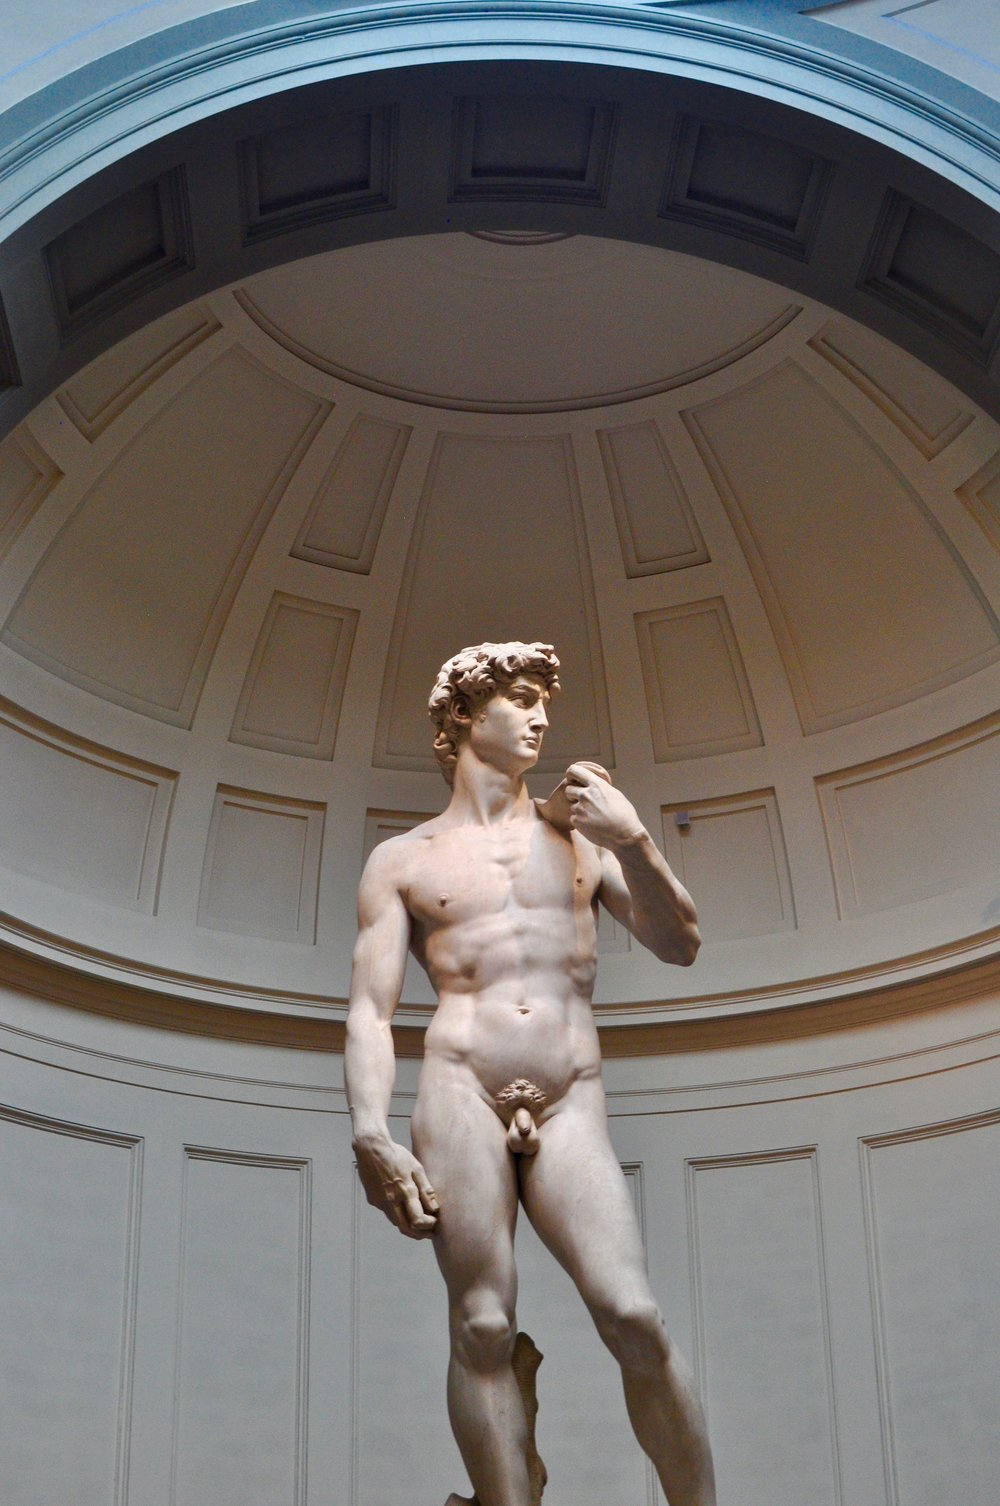 David at Galleria dell'Accademia - The 10 Things you must do in Florence, Italy